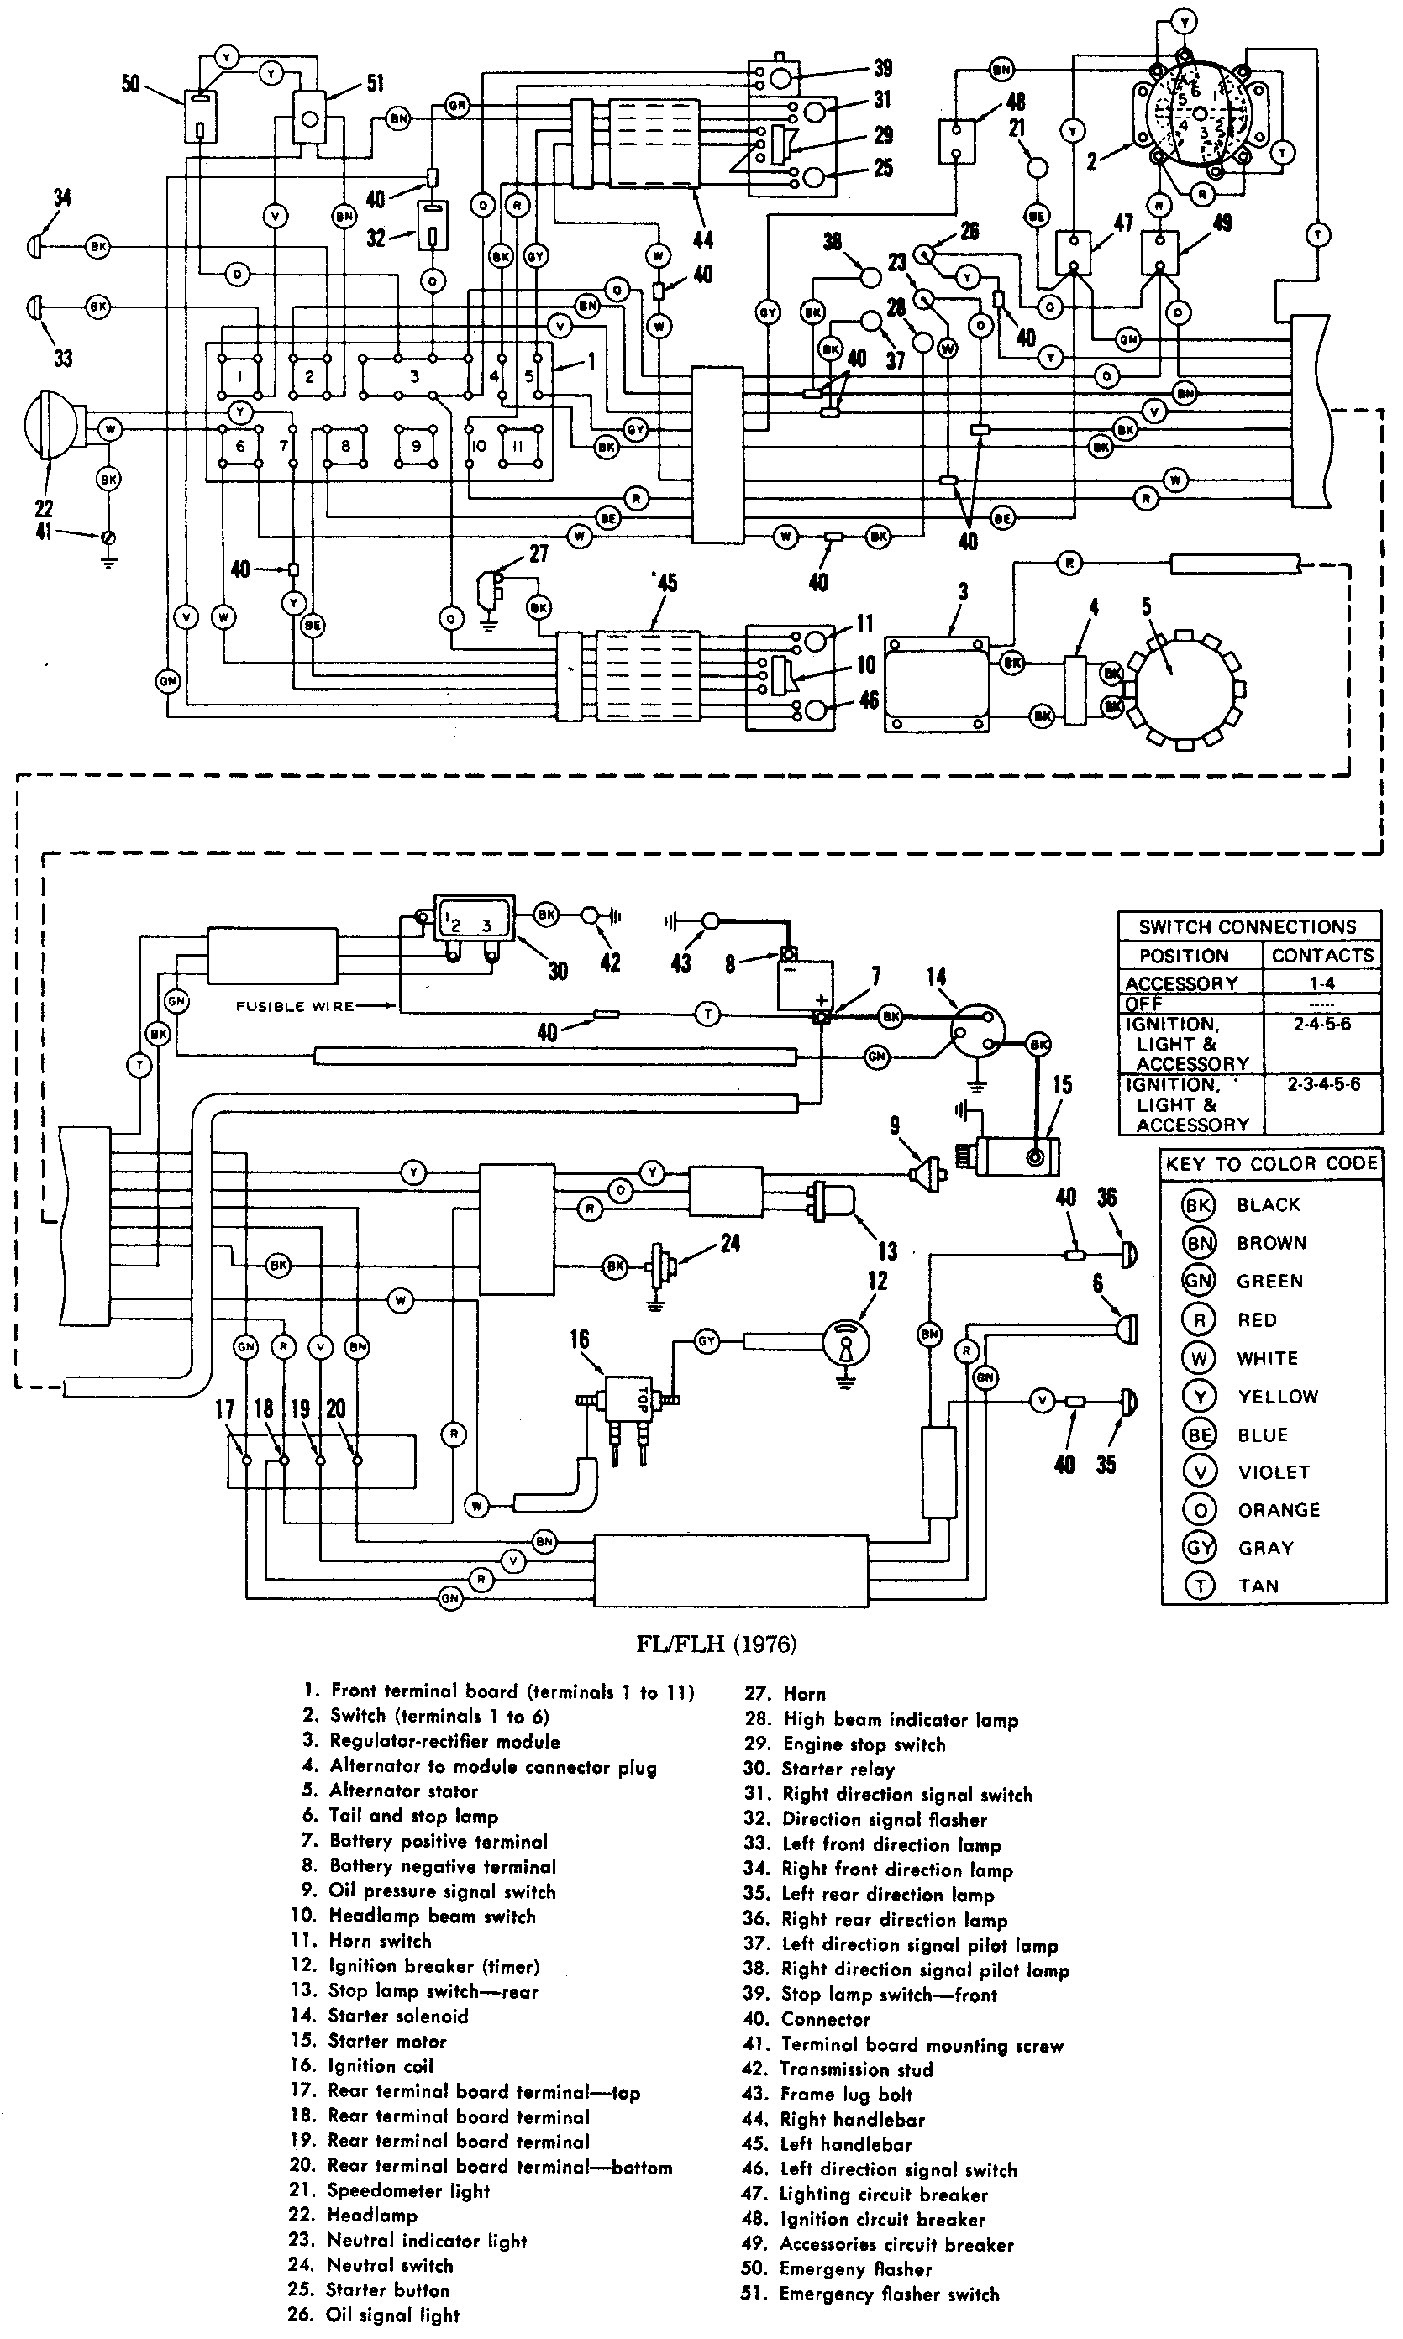 Diagram 2003 Harley Davidson Wiring Diagrams Full Version Hd Quality Wiring Diagrams Flashdiagram Media90 It